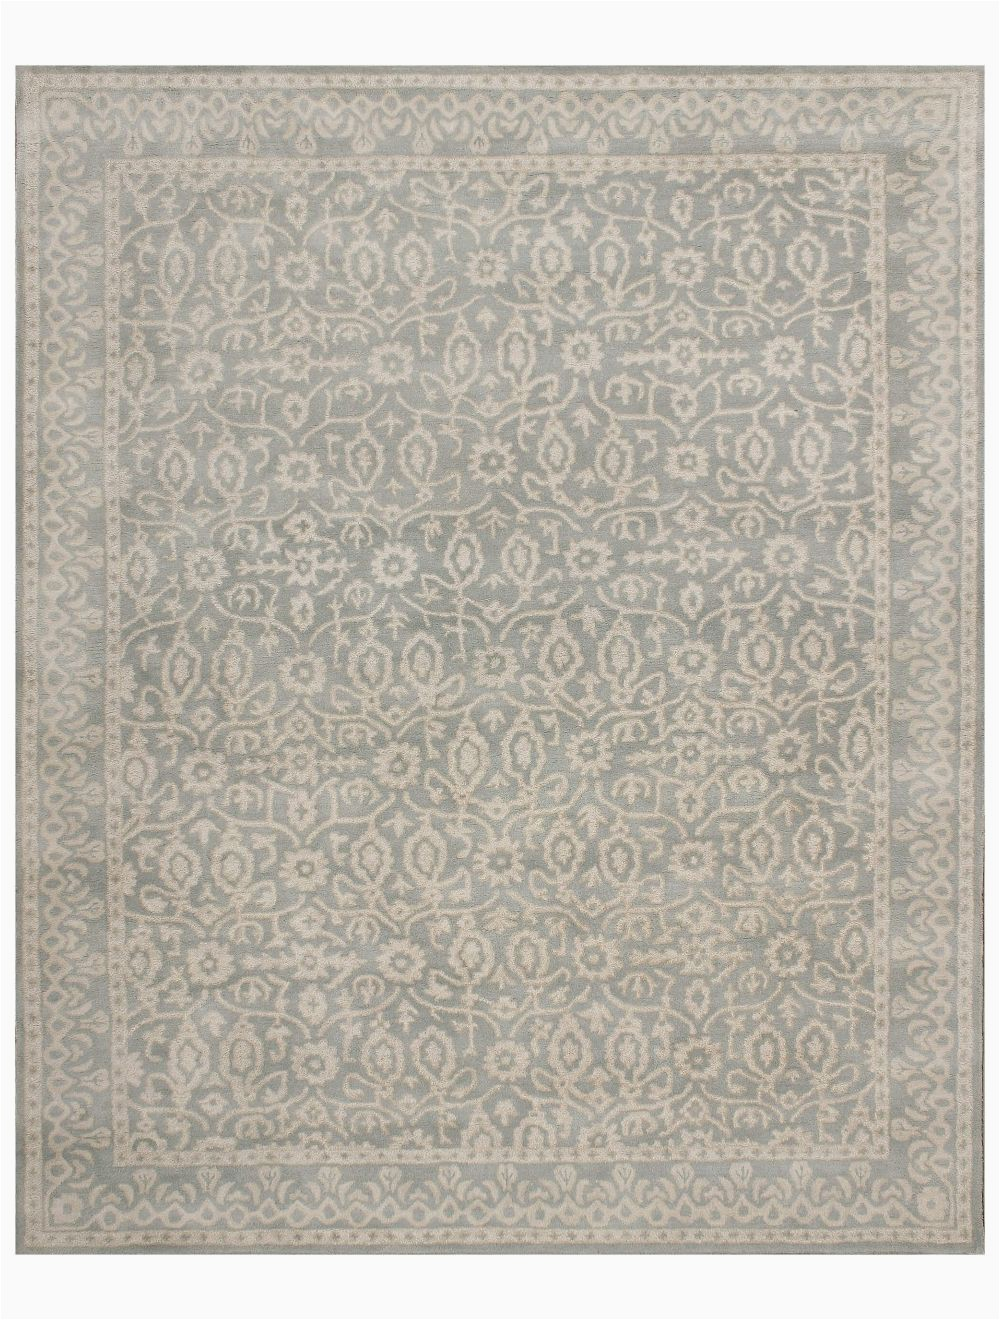 Desa Bordered Wool Rug Blue Abc Tile Rug Porcelain Light Blue Wool Rug 8 X 10